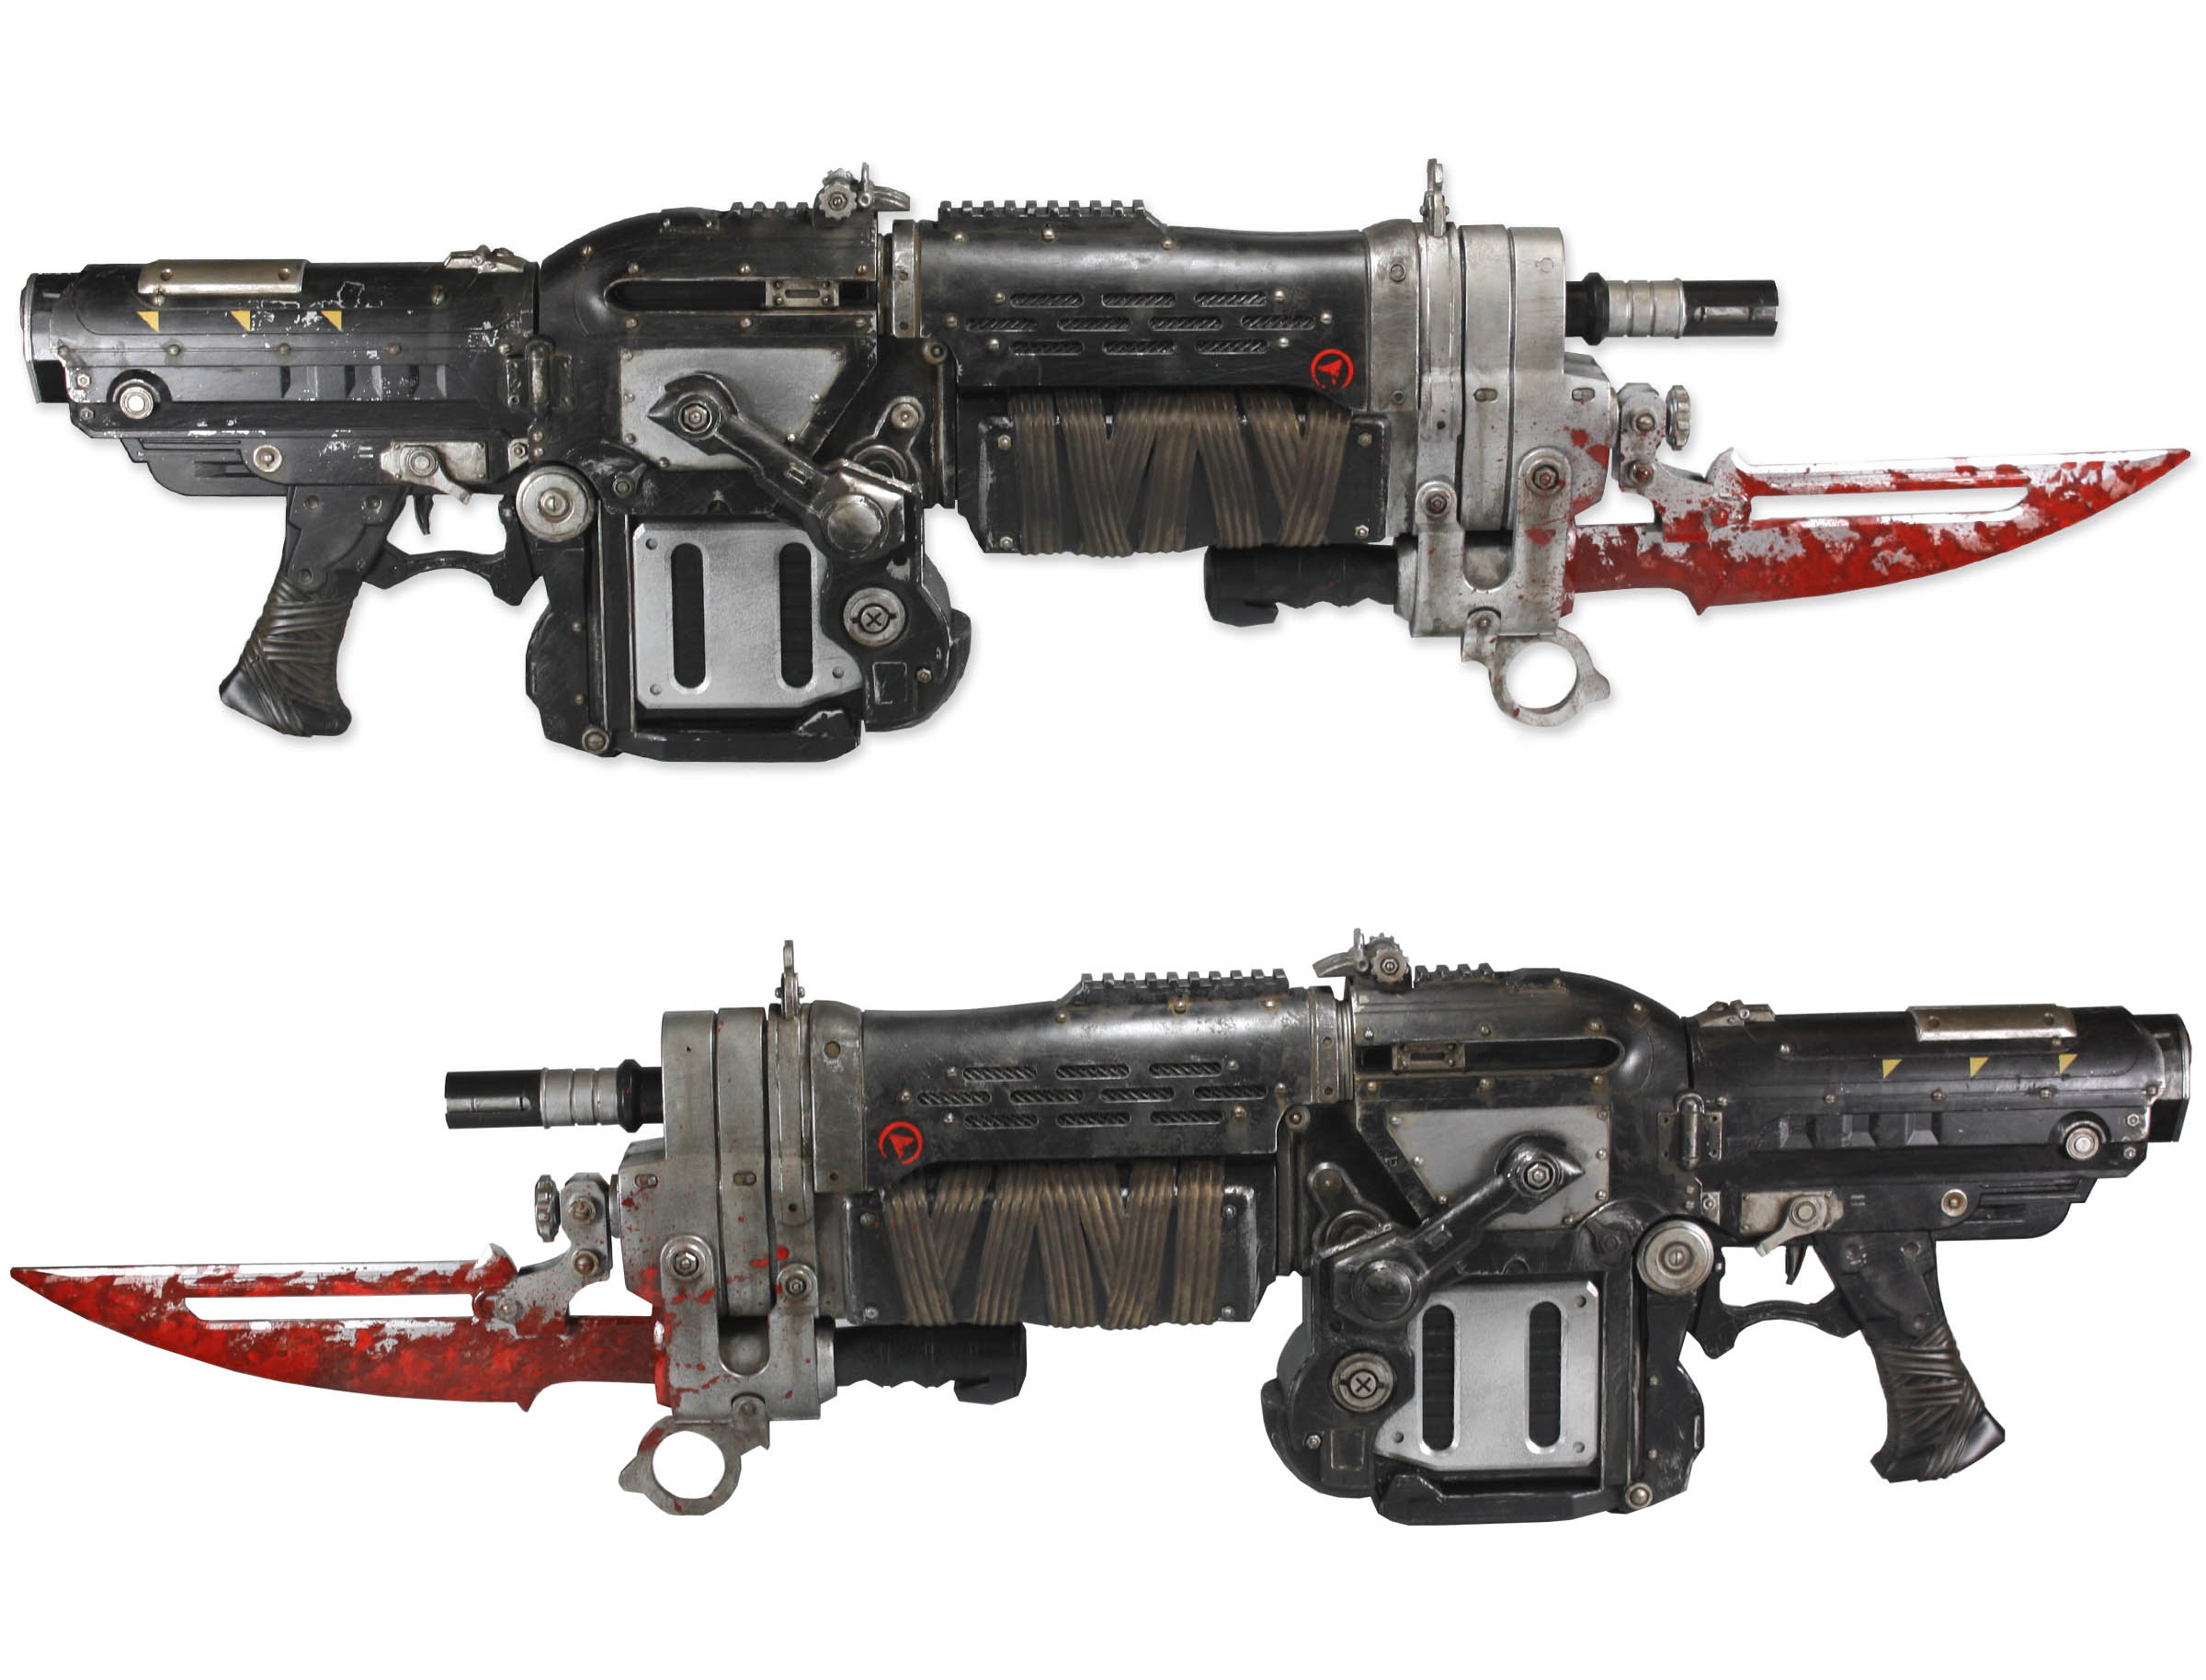 Gears 3: Execute Your Friends!  Full Scale Retro-lancers For Sale From EPIC?